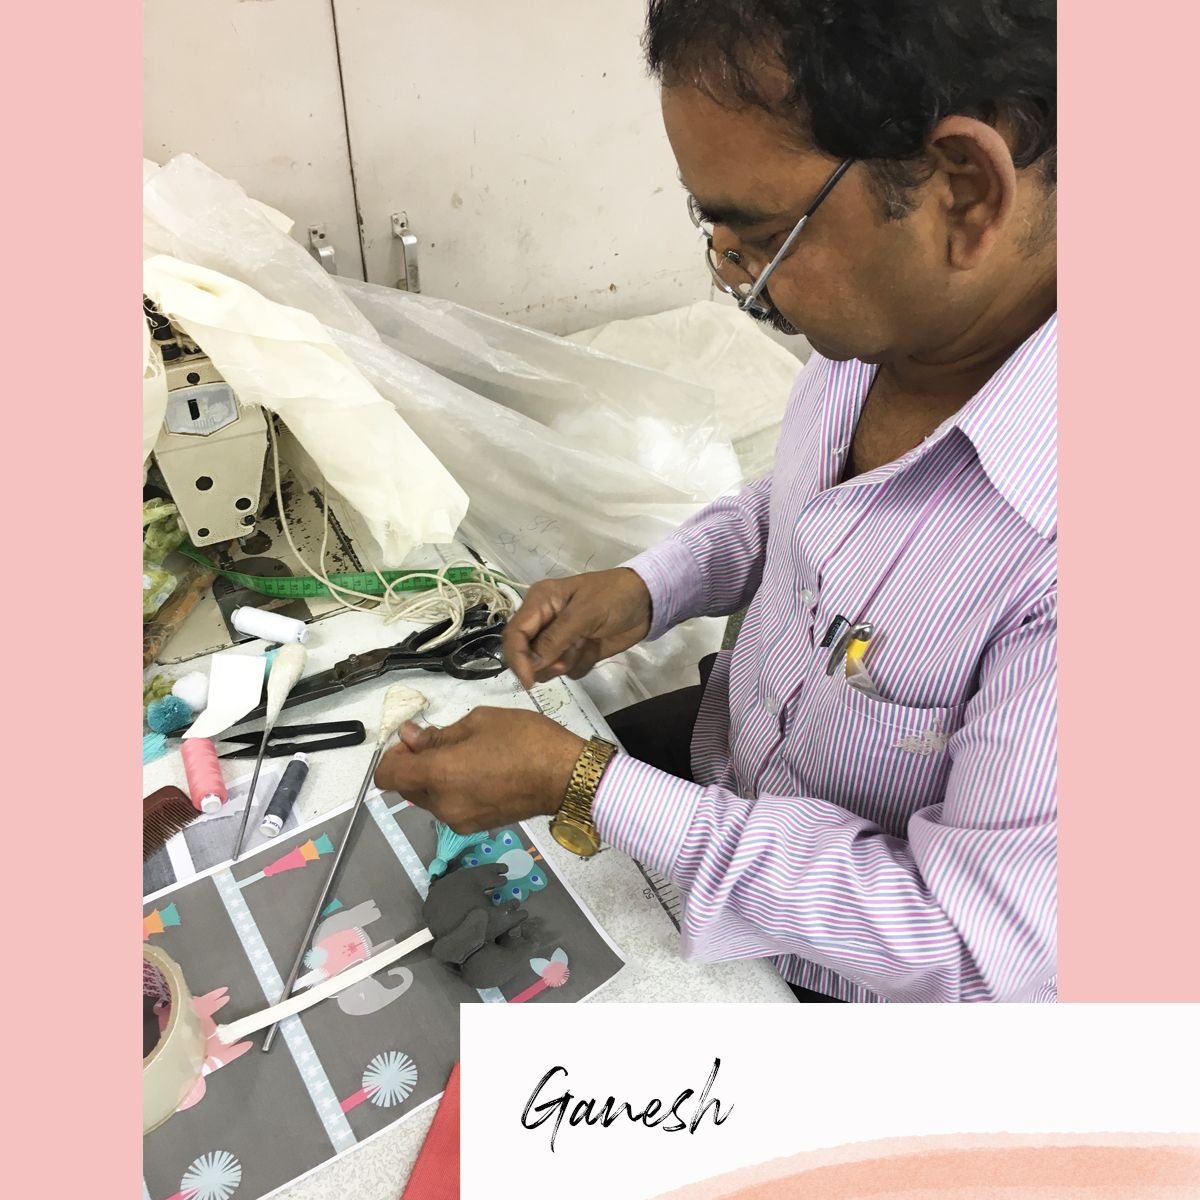 Ganesh - mara mea bag production